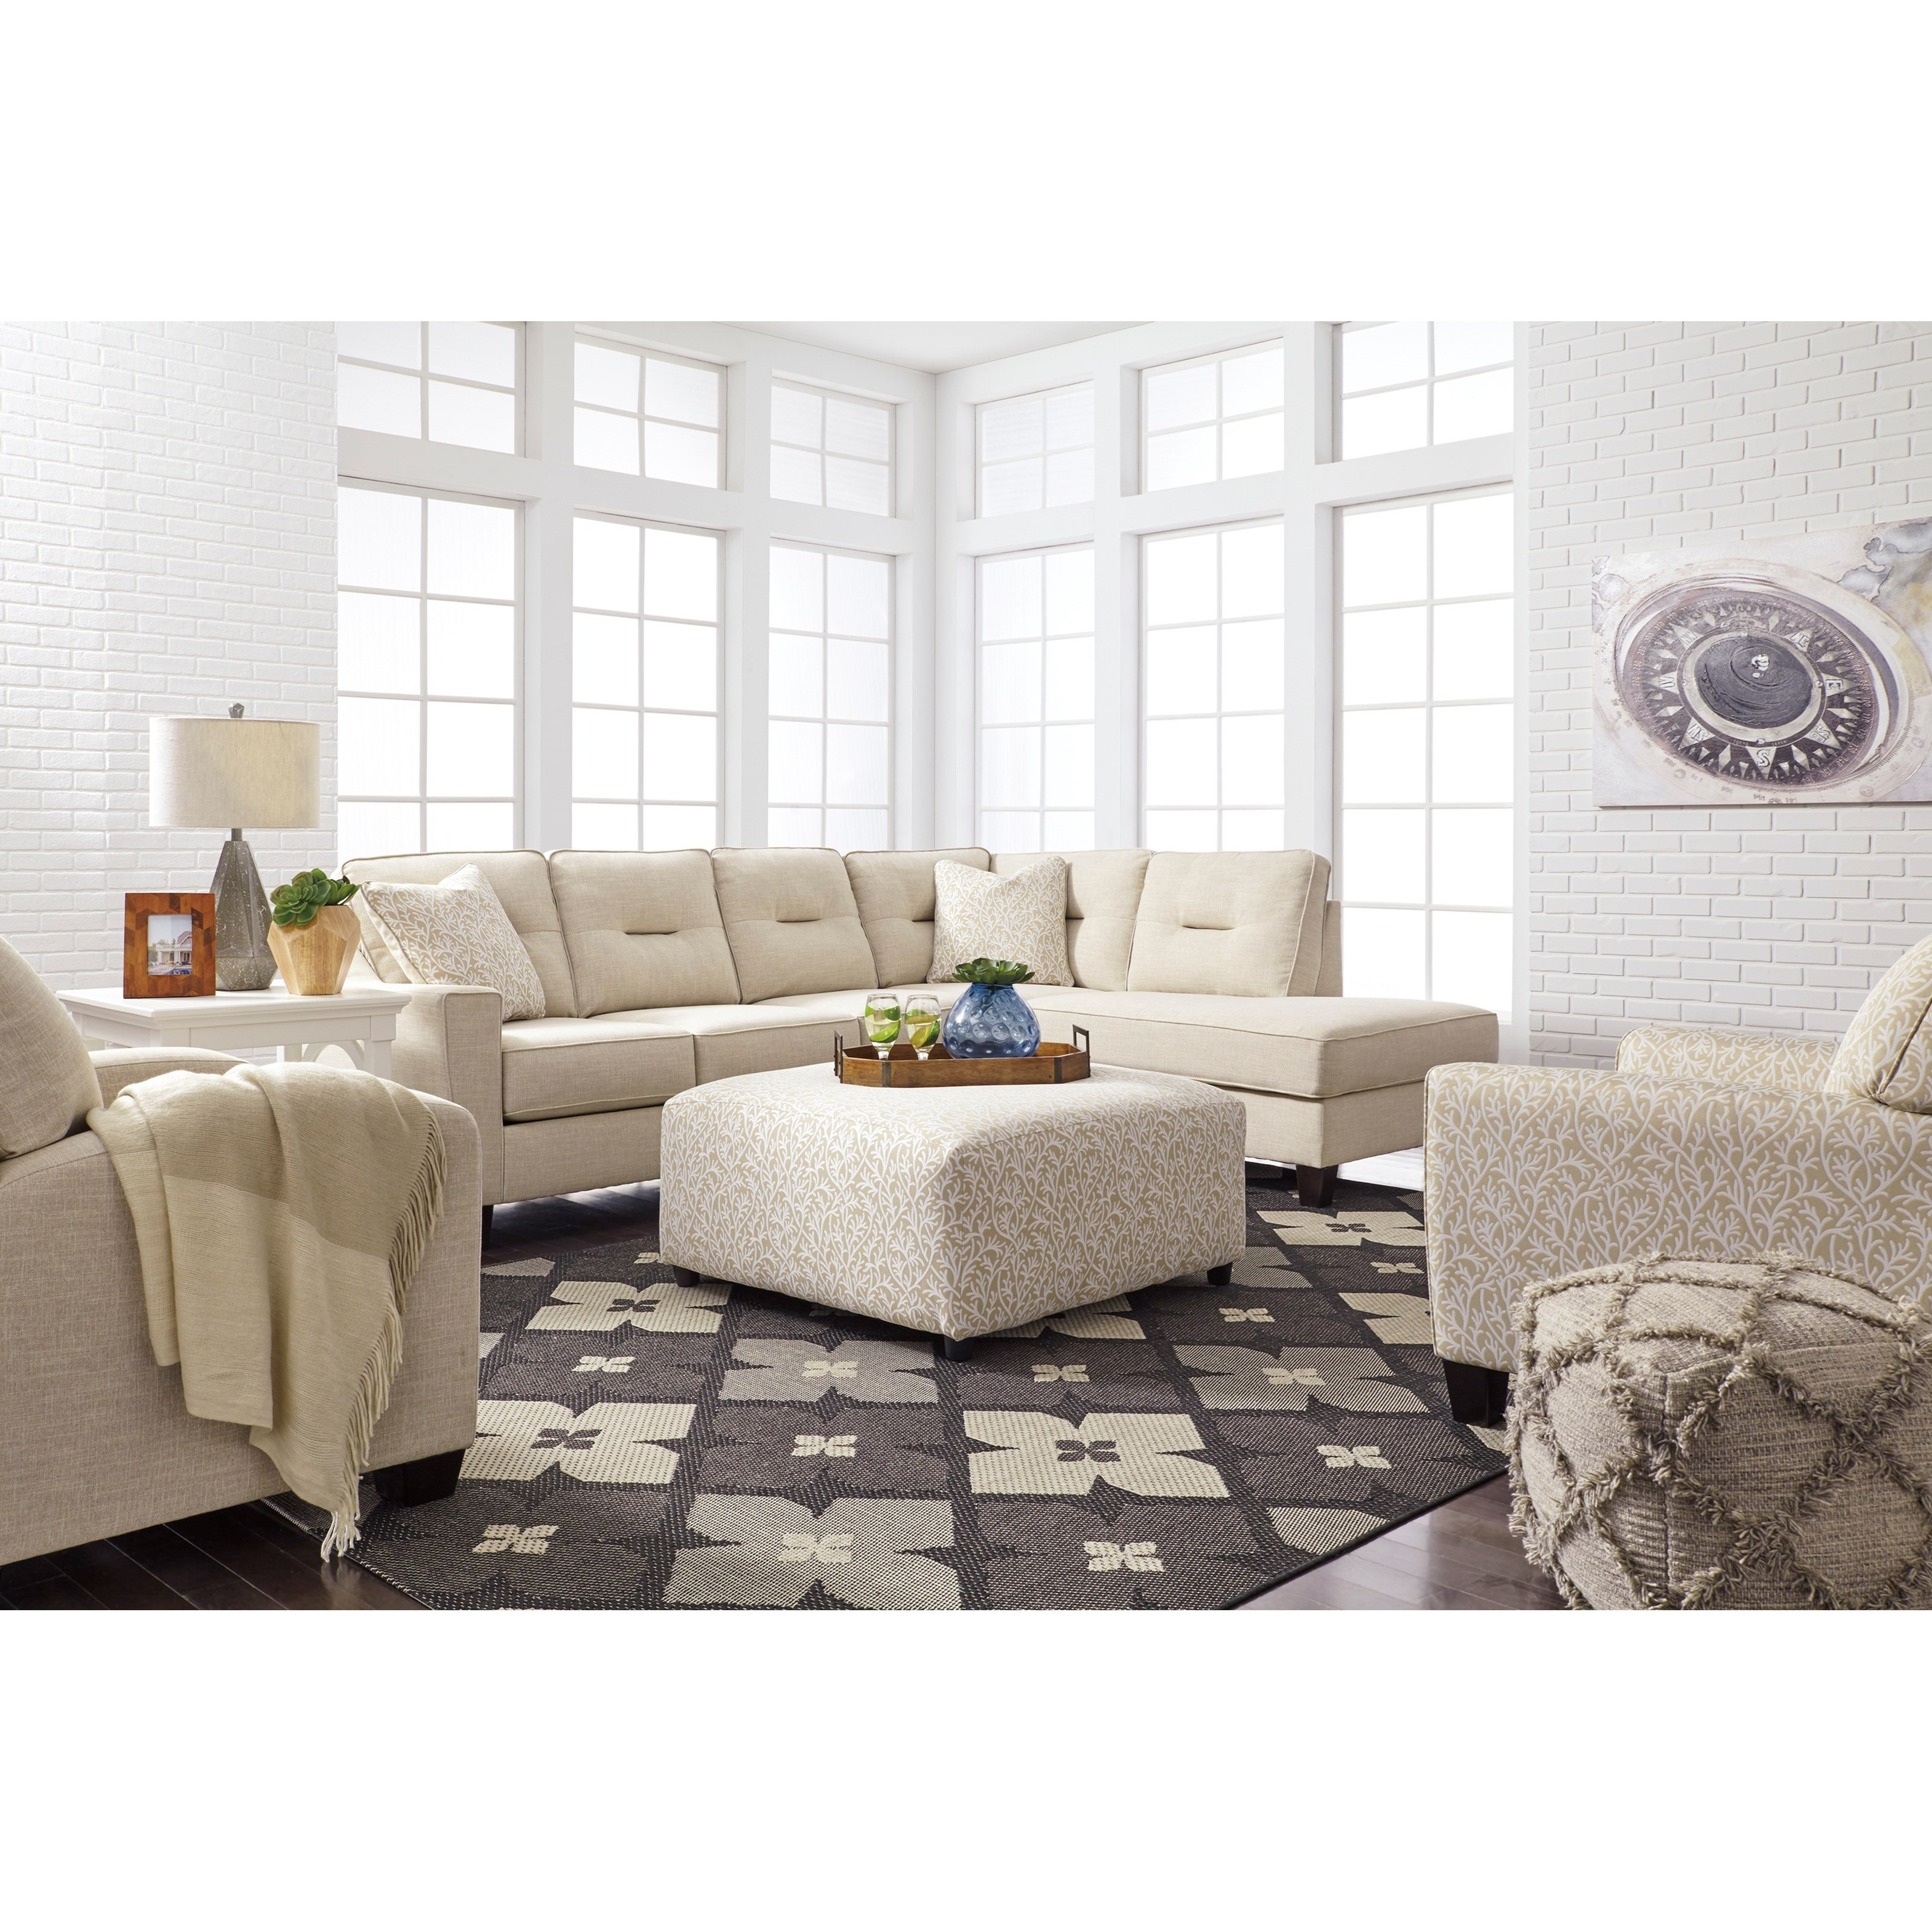 Benchcraft Kirwin Nuvella Stationary Living Room Group - Item Number: 99605 Living Room Group 8